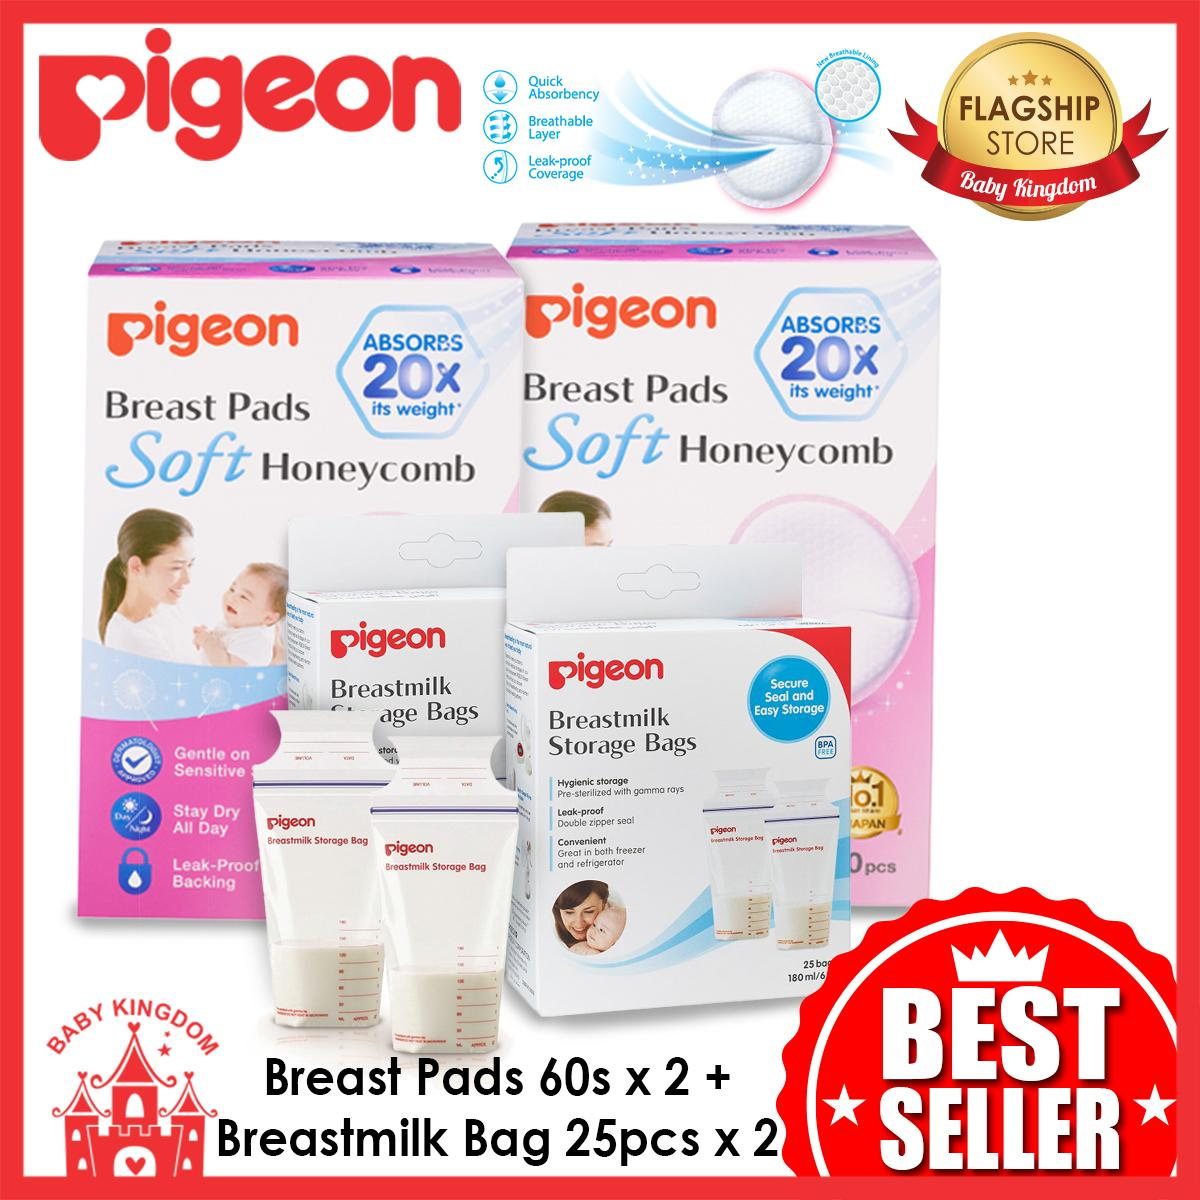 Pigeon Breast Pads 60sx2 + Breastmilk Bags 25pcsx2